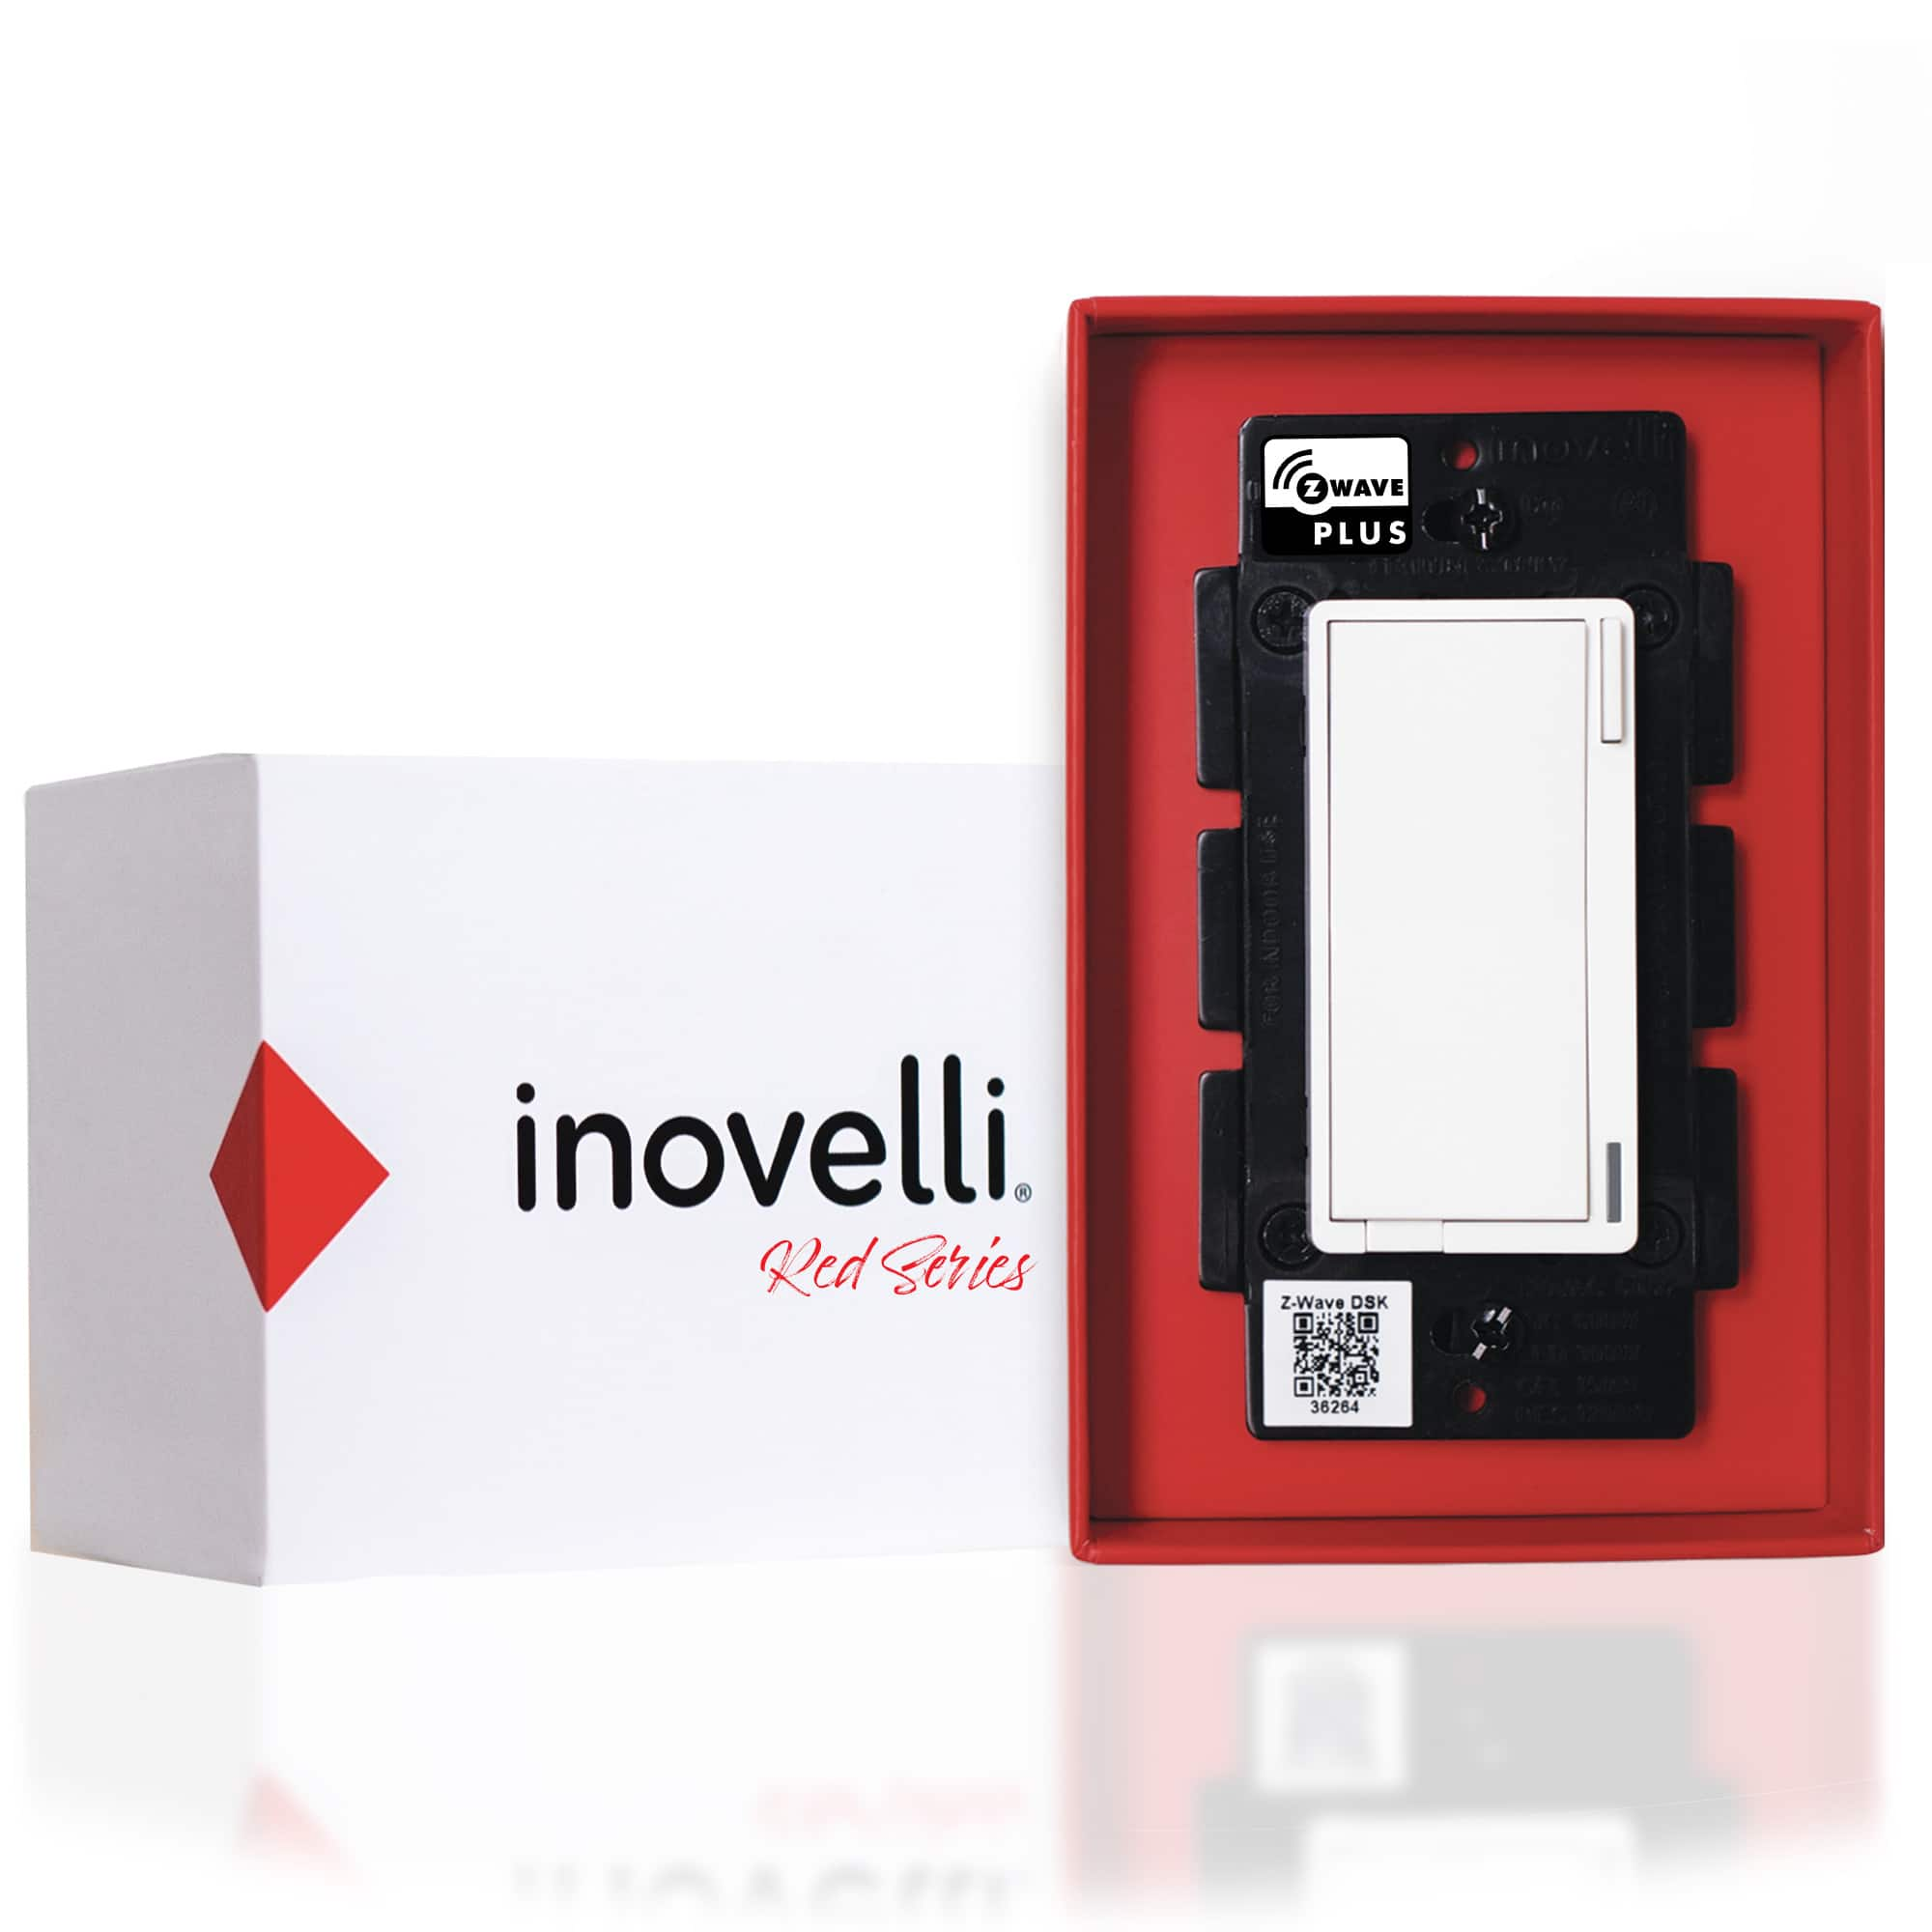 Inovelli Smart Switch Flash Sale (Red Series $29.97) (Black Series $24.97) + Shipping